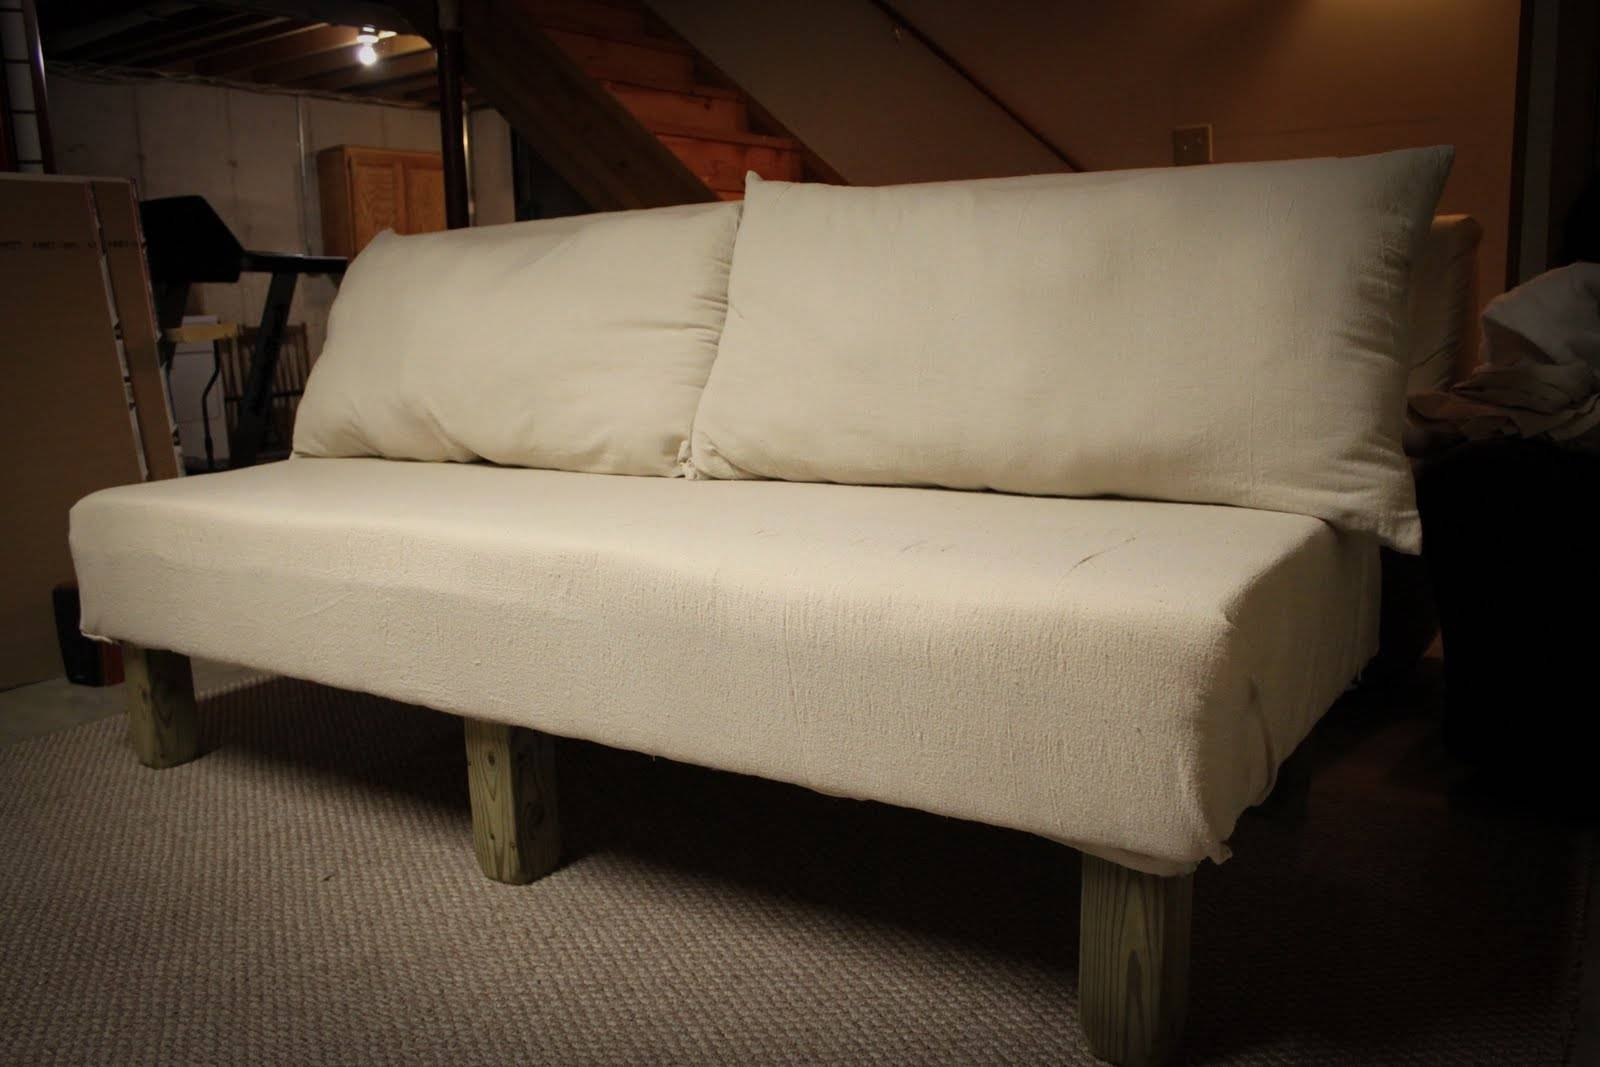 Diy Sectional Sofa Frame Plans - Tourdecarroll with regard to Diy Sleeper Sofa (Image 10 of 30)